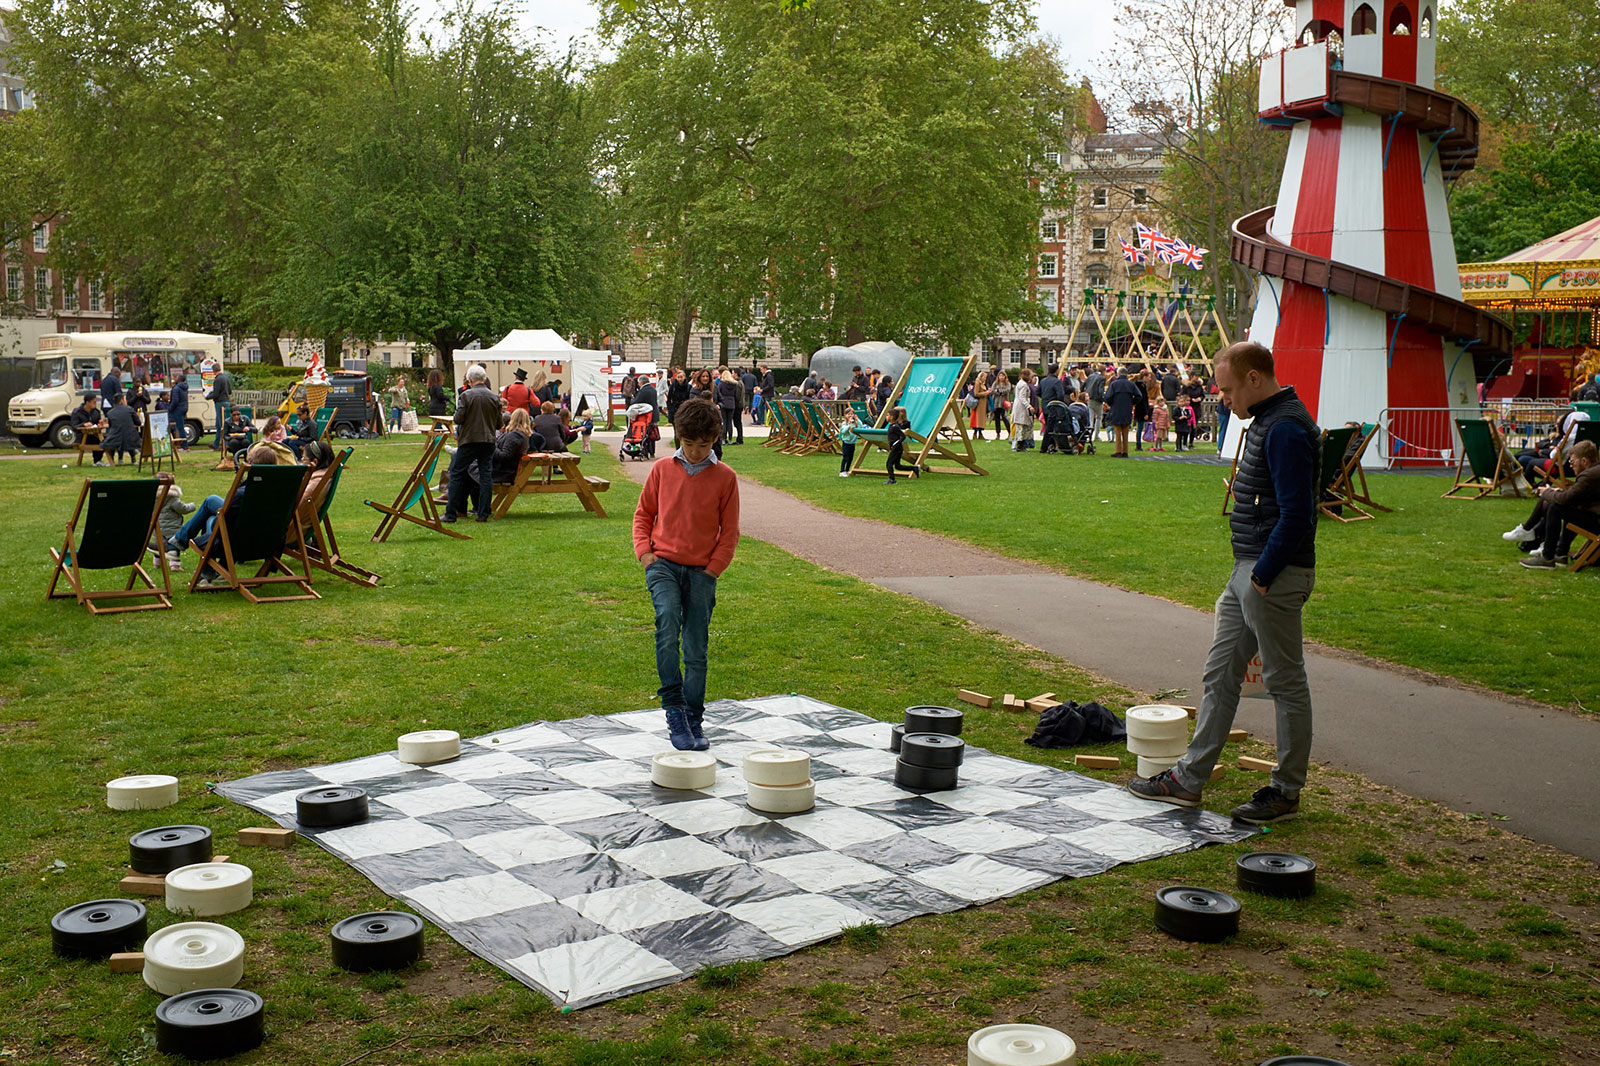 Father and son enthusiastically challenge each other to a game of draughts.